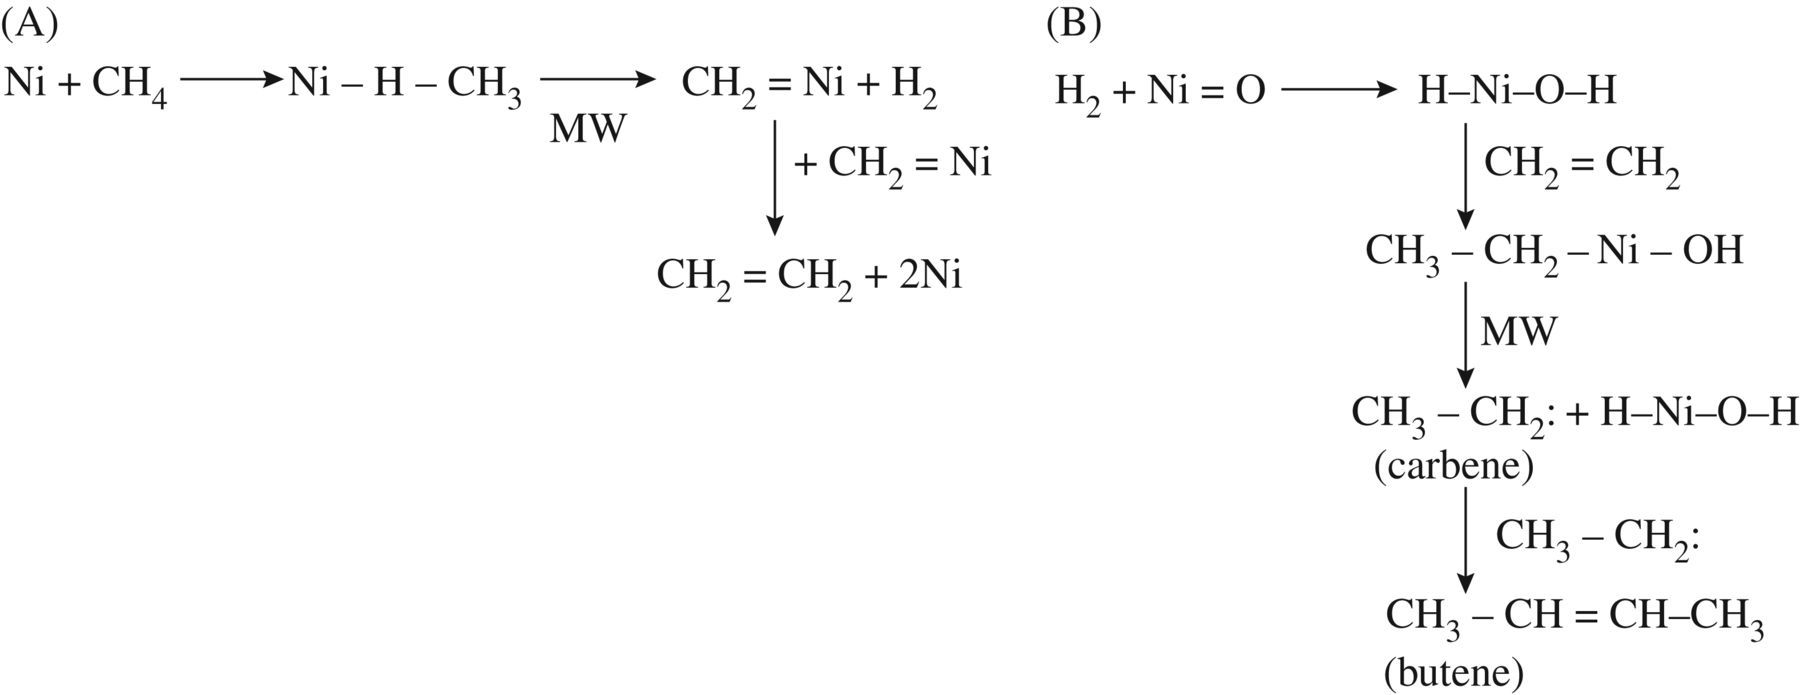 Microwave-assisted direct synthesis of butene from high